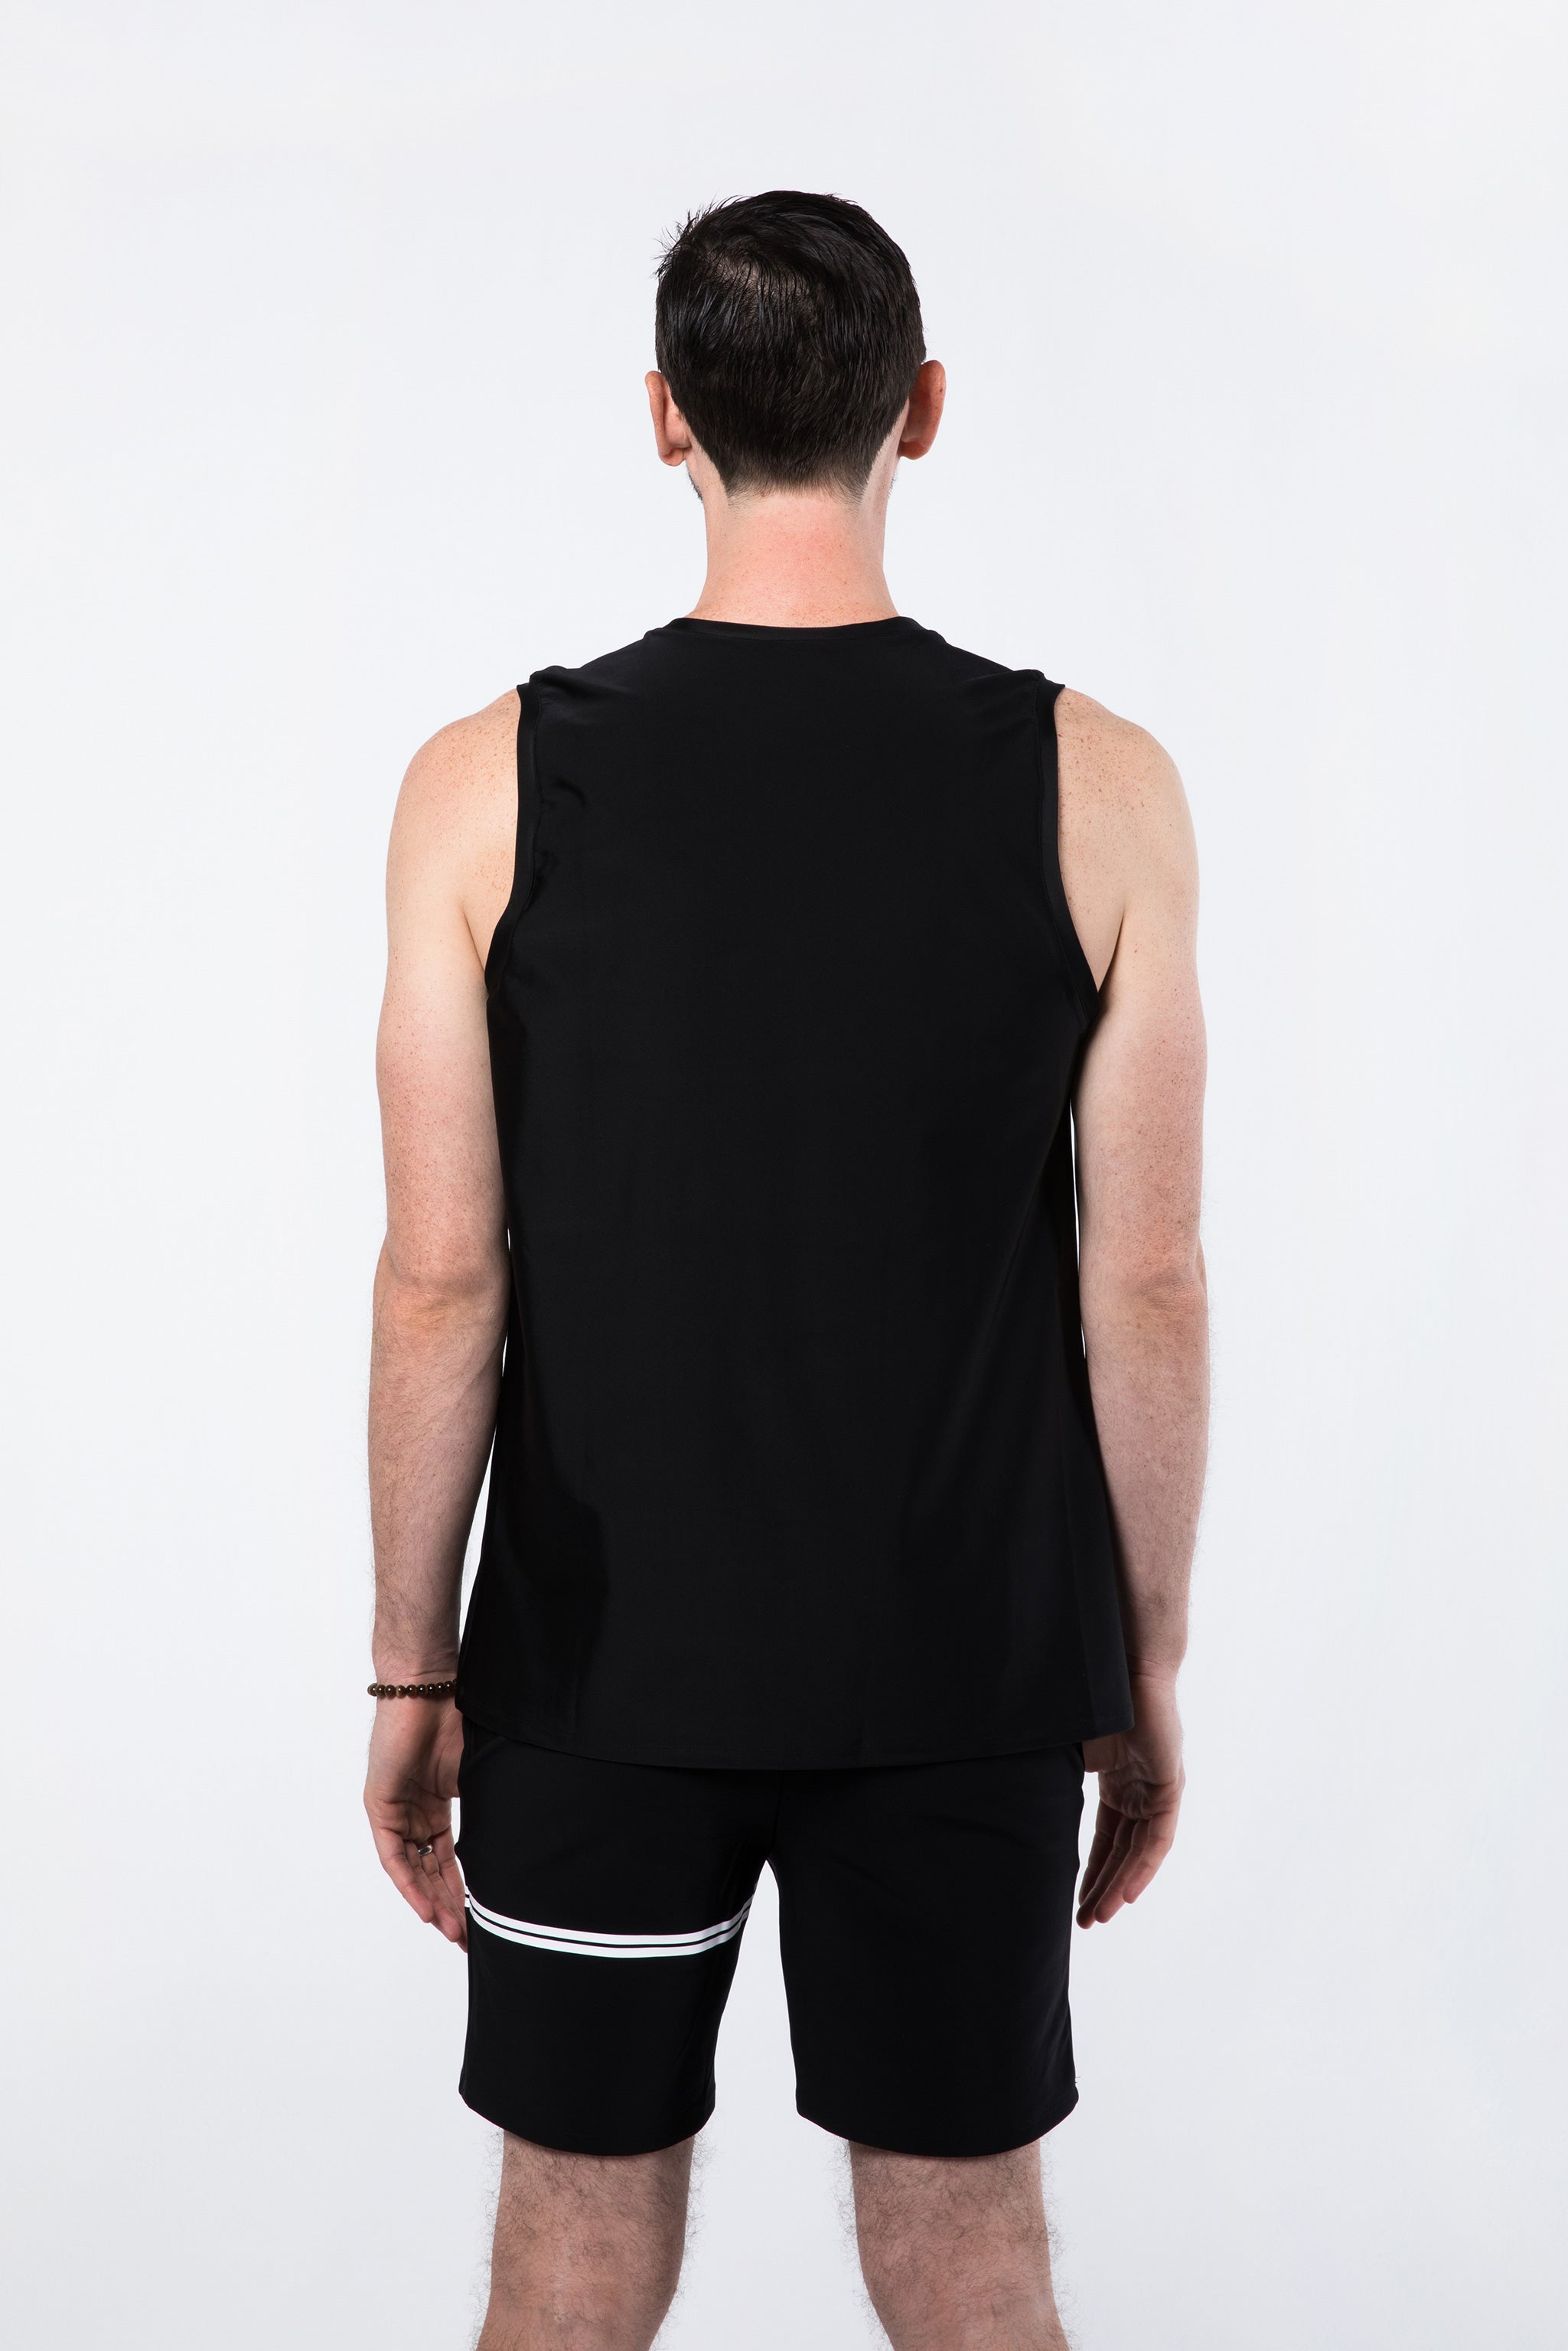 Man in Sleeveless Yoga Shirt (Back)